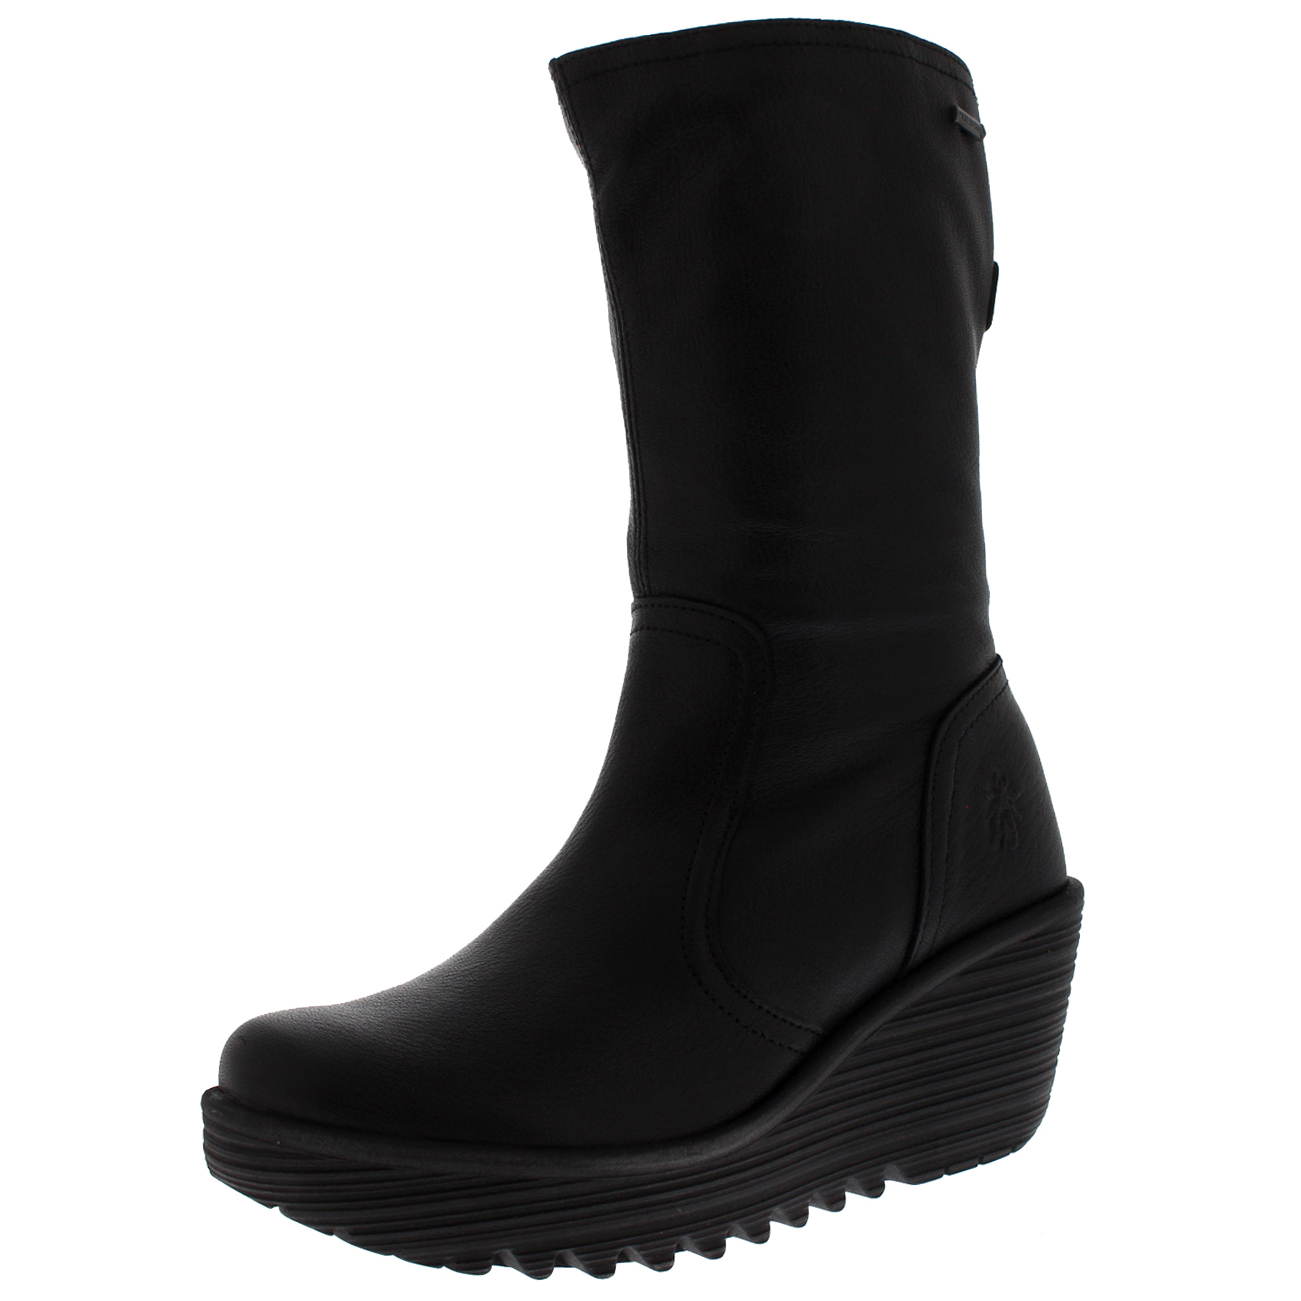 9a2676bdeb0 Details about Womens Fly London Yups Warm Black Wedge Heel Winter Mid Calf  Leather Boot 5-11